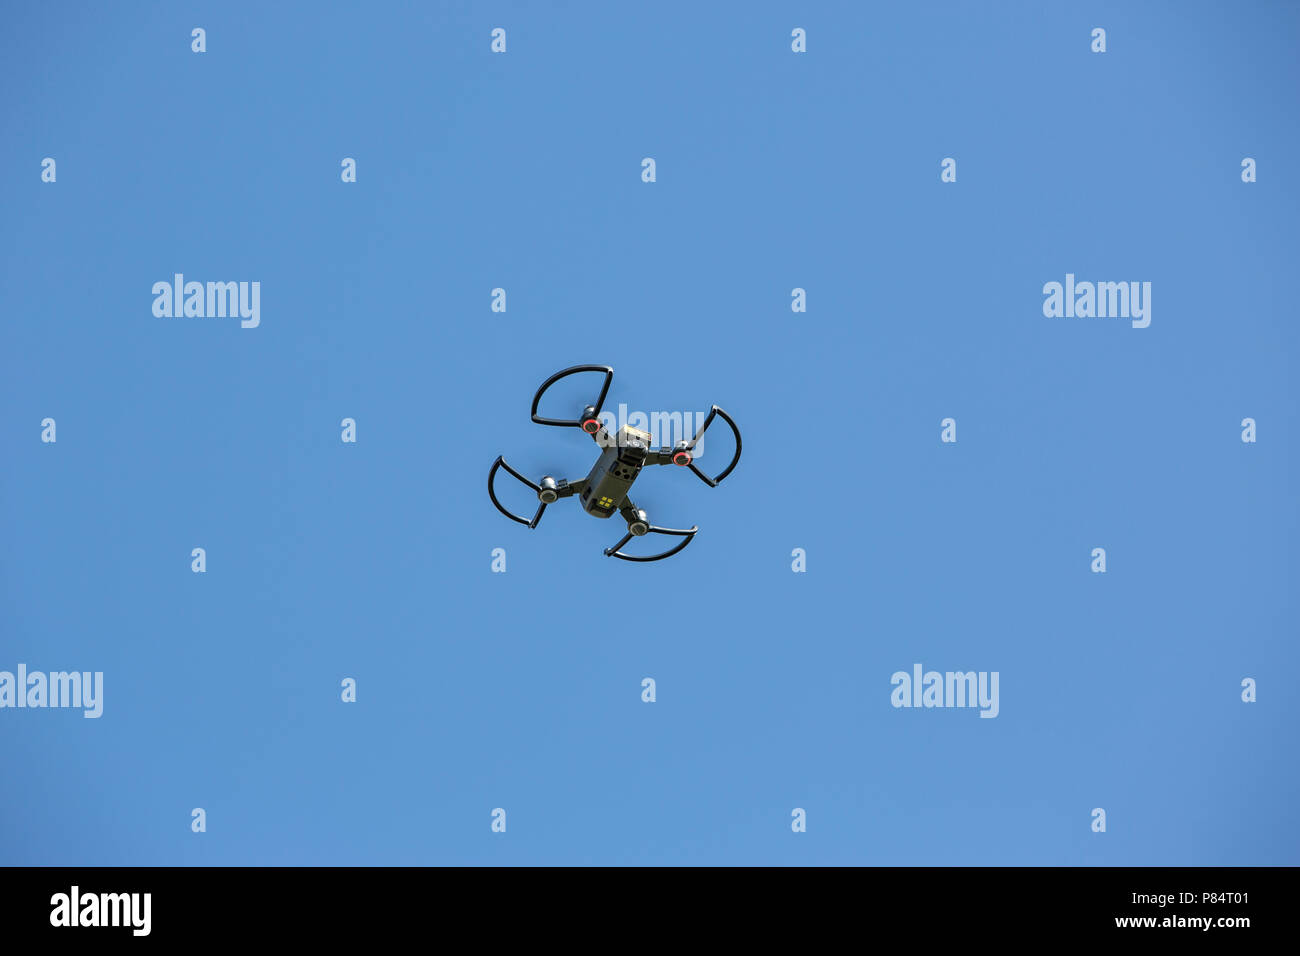 A camera carrying drone flying in a clear blue sky - Stock Image